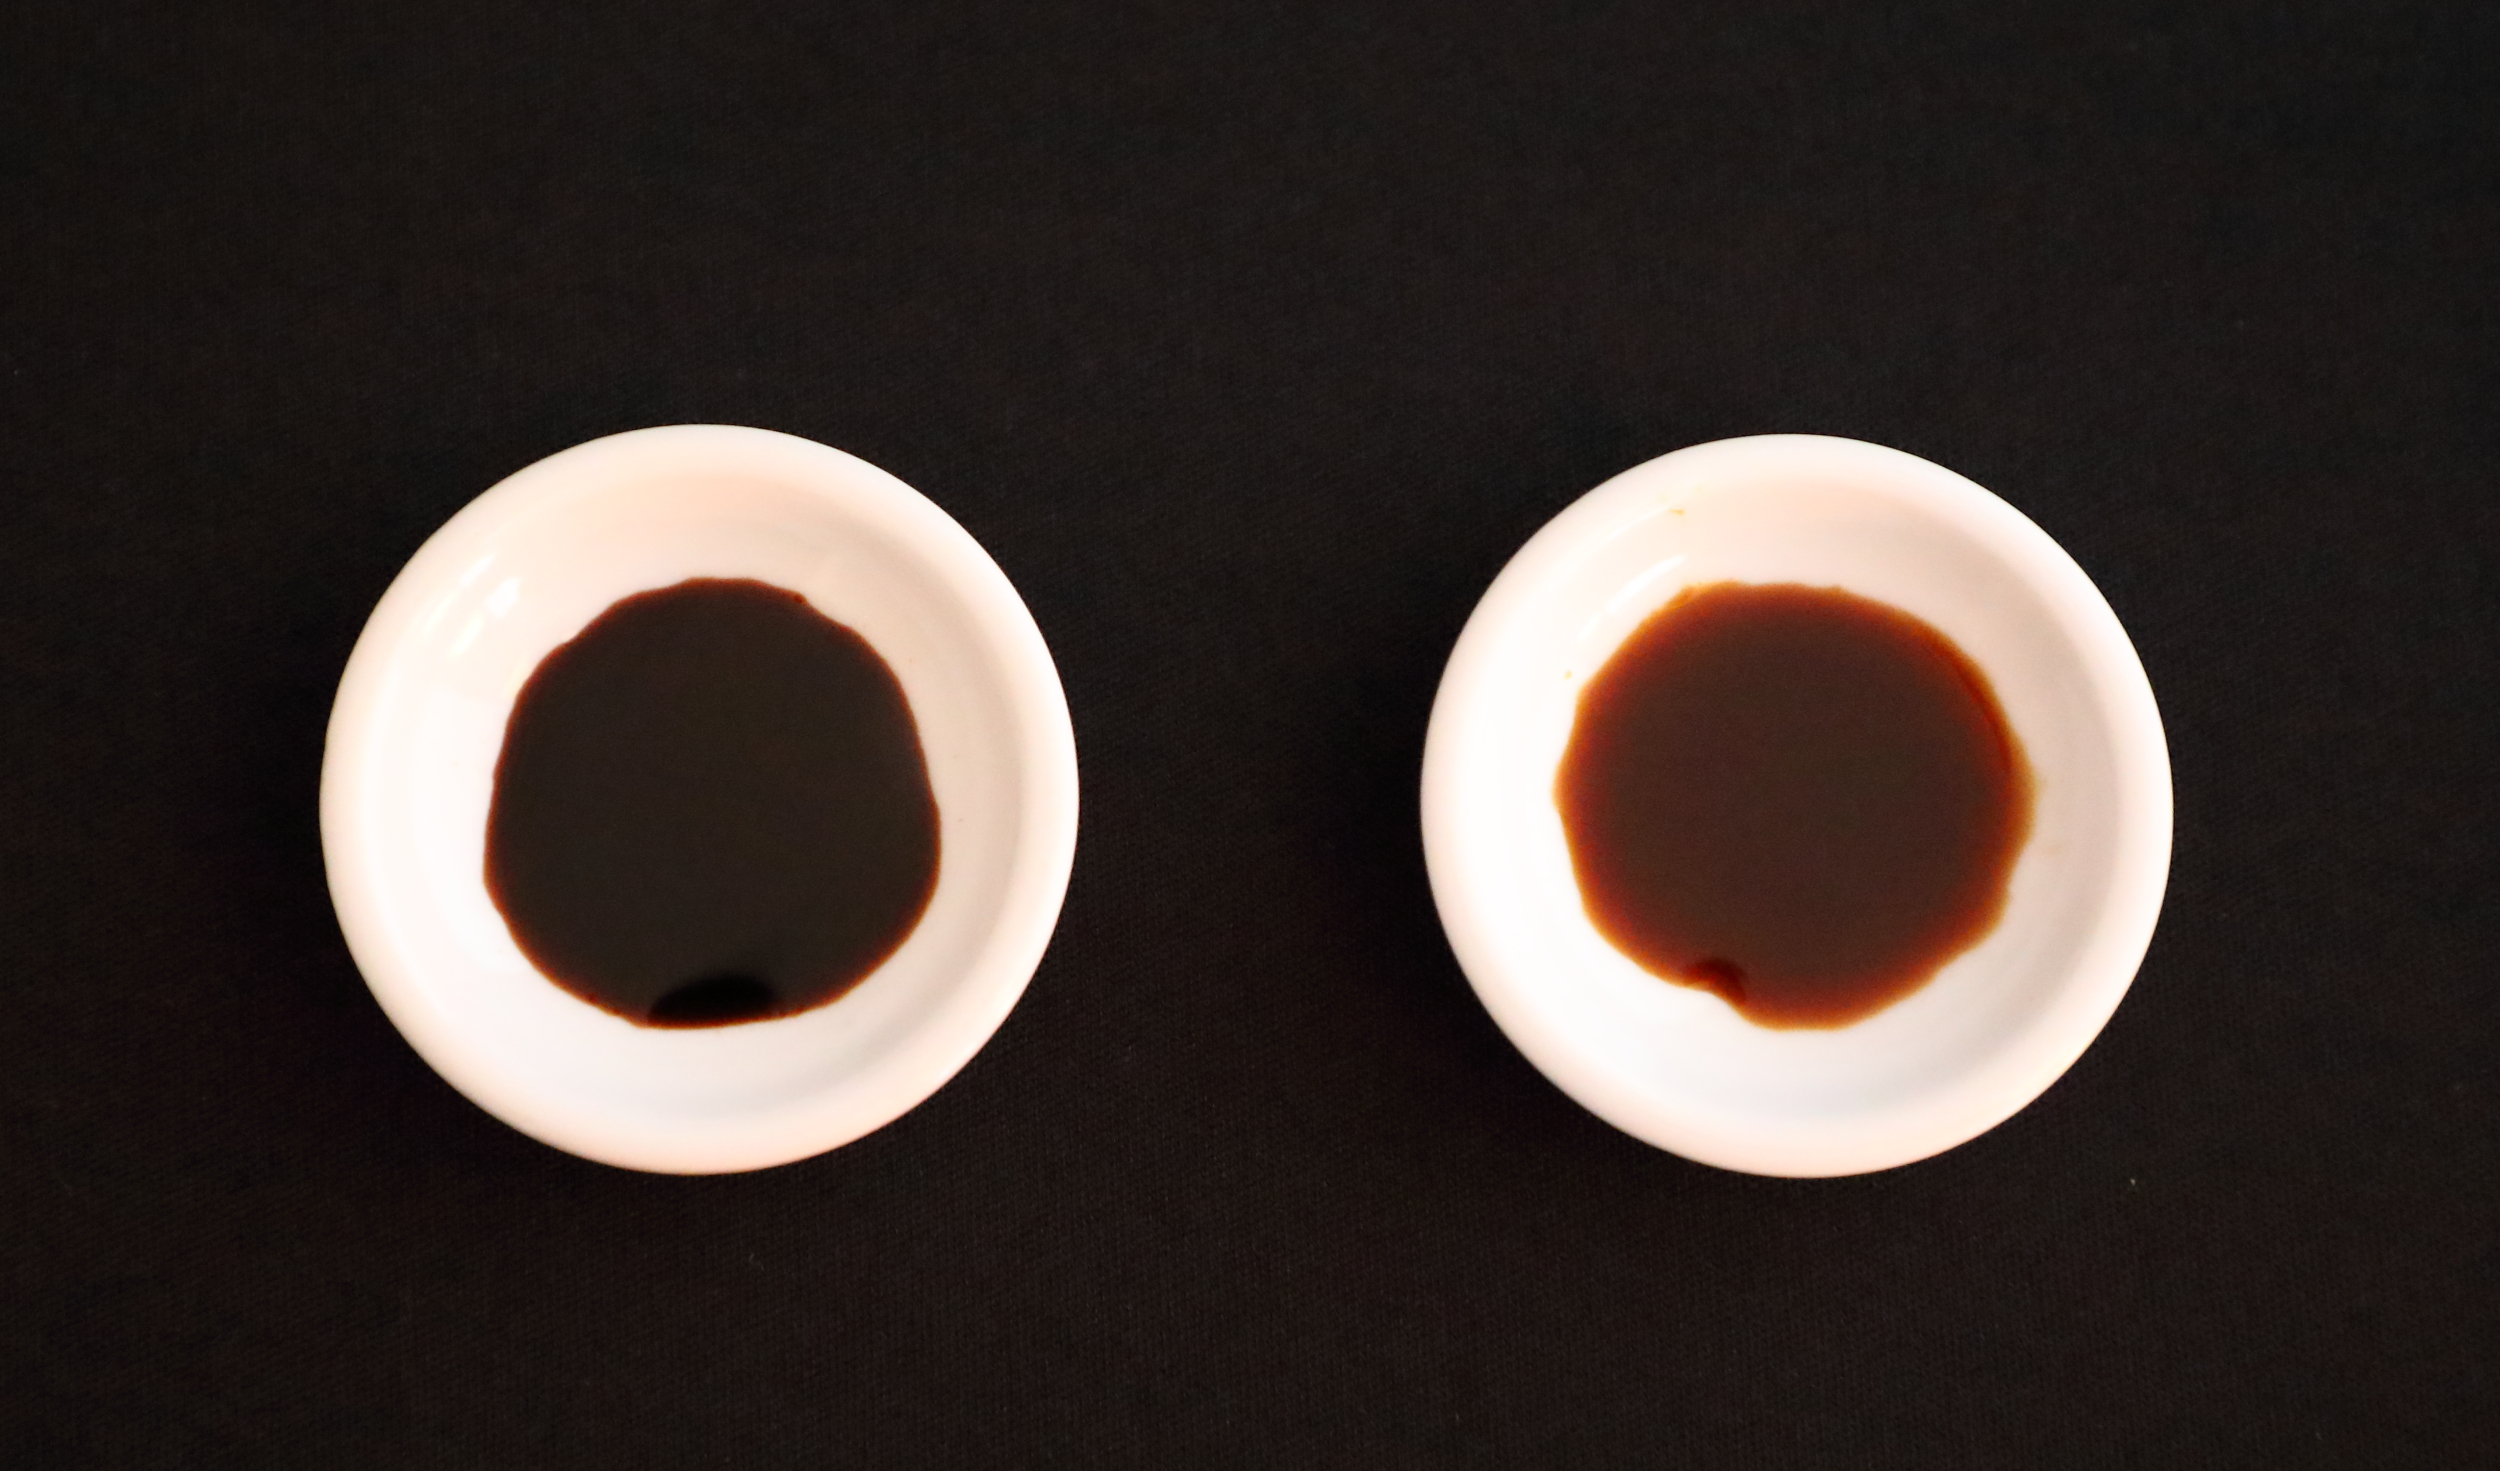 On the right, Kamebishiya's  koikuchi  soy sauce has the red color characteristic of high-quality, artisanally-made soy sauce. Its three-year soy sauce on the left is much darker in color reflecting its deeper, richer flavor.